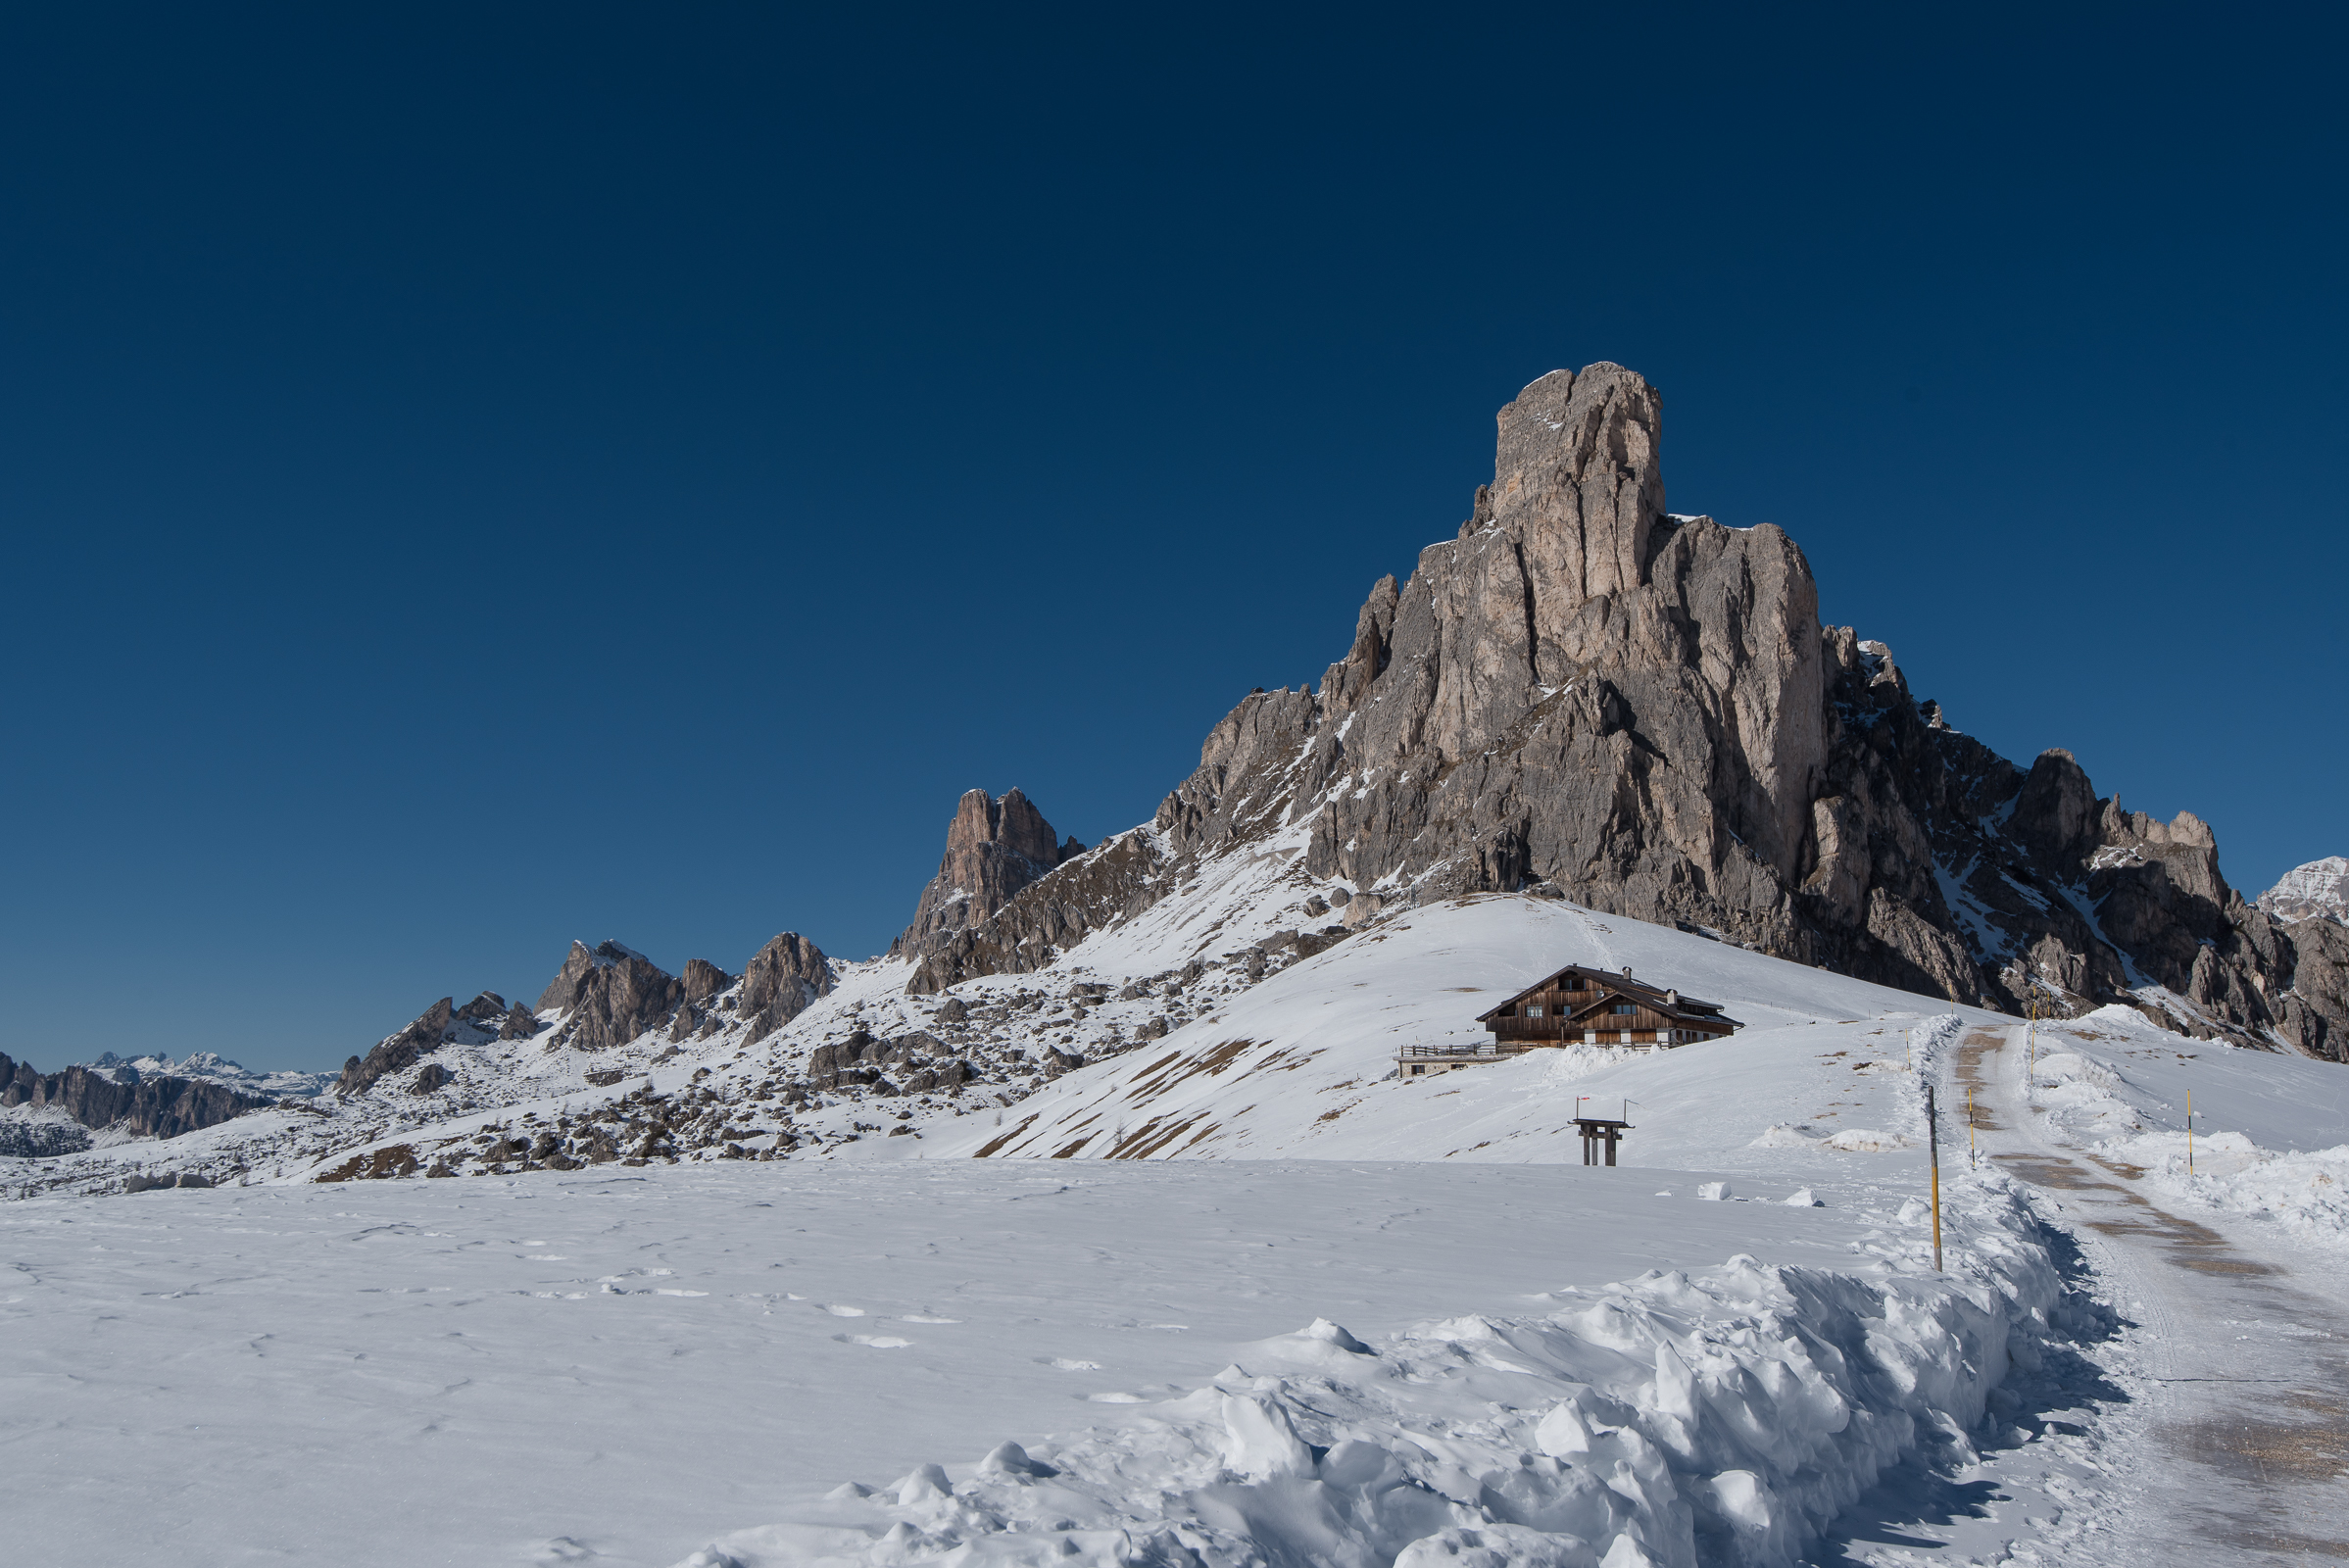 The Gusella, the mountain which overlooks the Passo Giau...